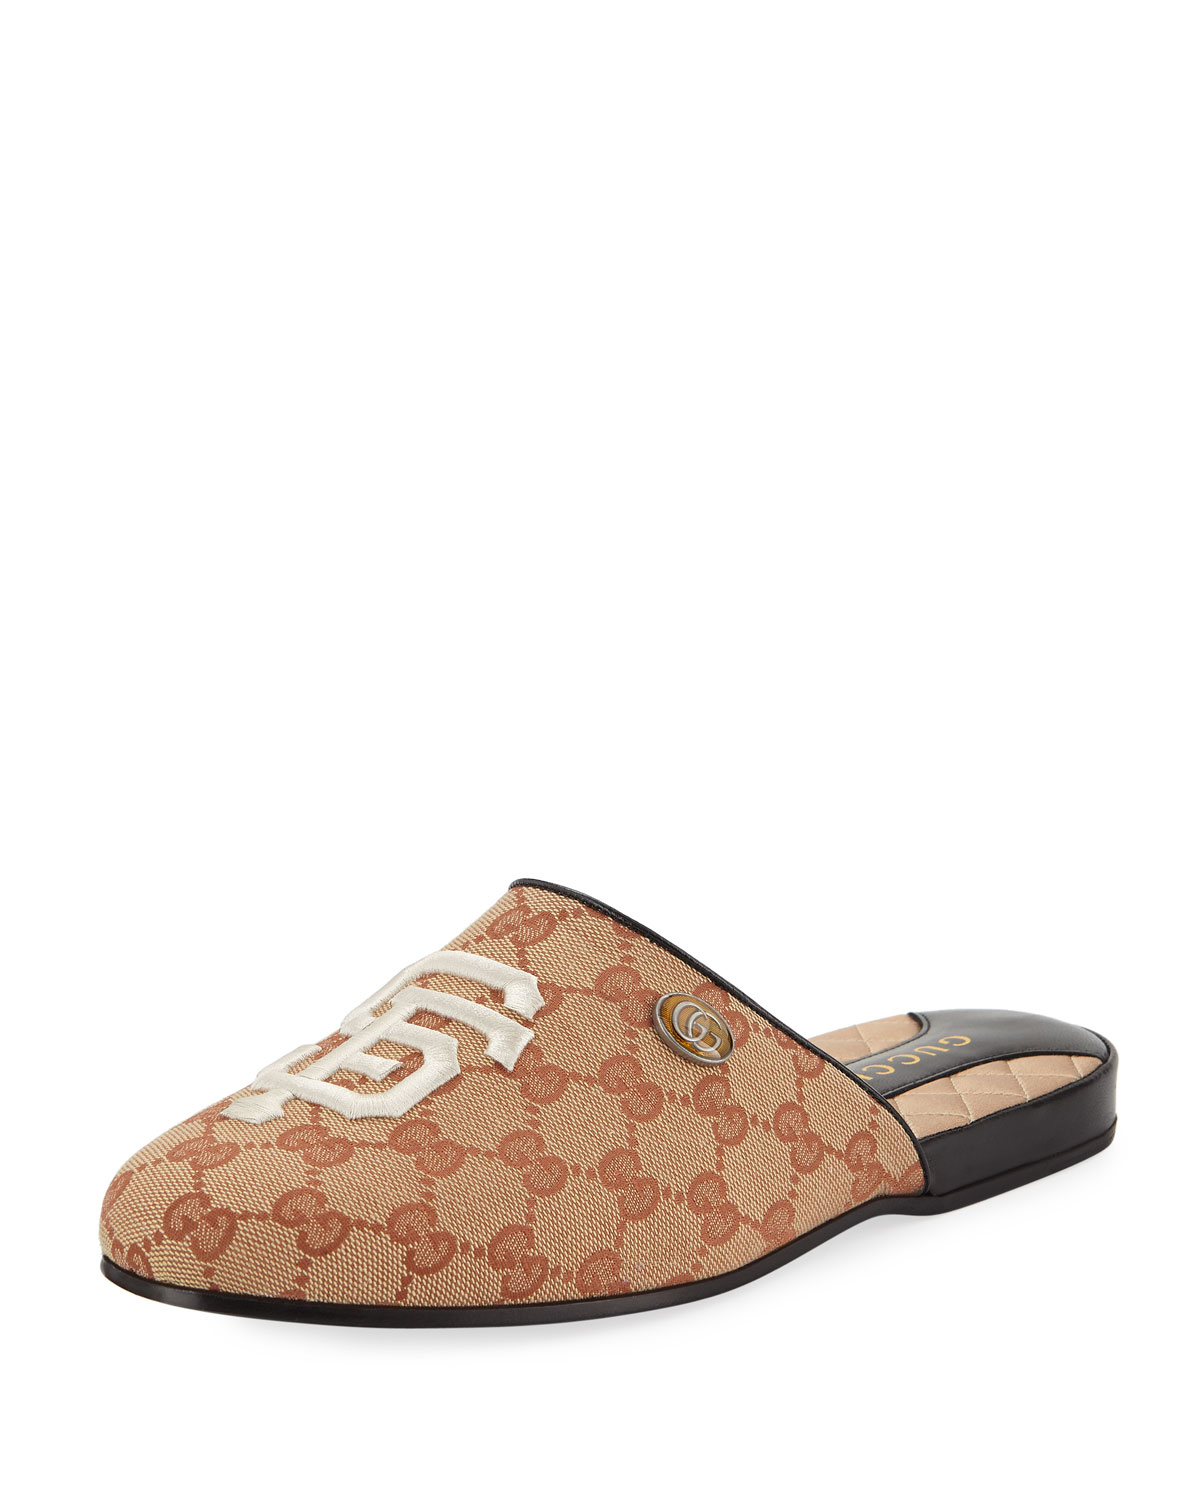 919846926b8e Gucci Original GG Slippers with SF Giants™ MLB Patch